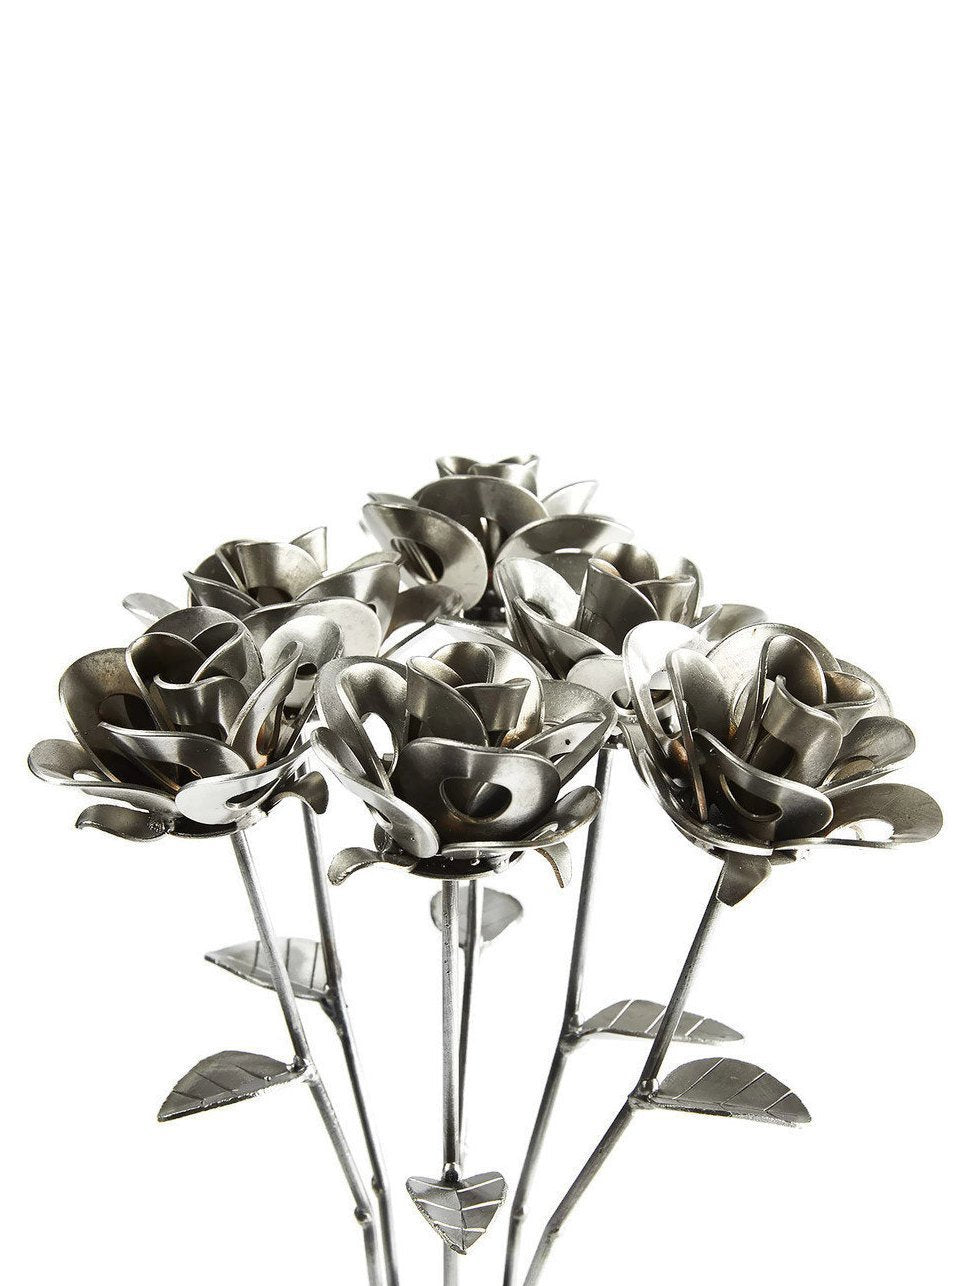 Half Dozen Metal Roses and Vase, Six Recycled Metal Roses and Vase,